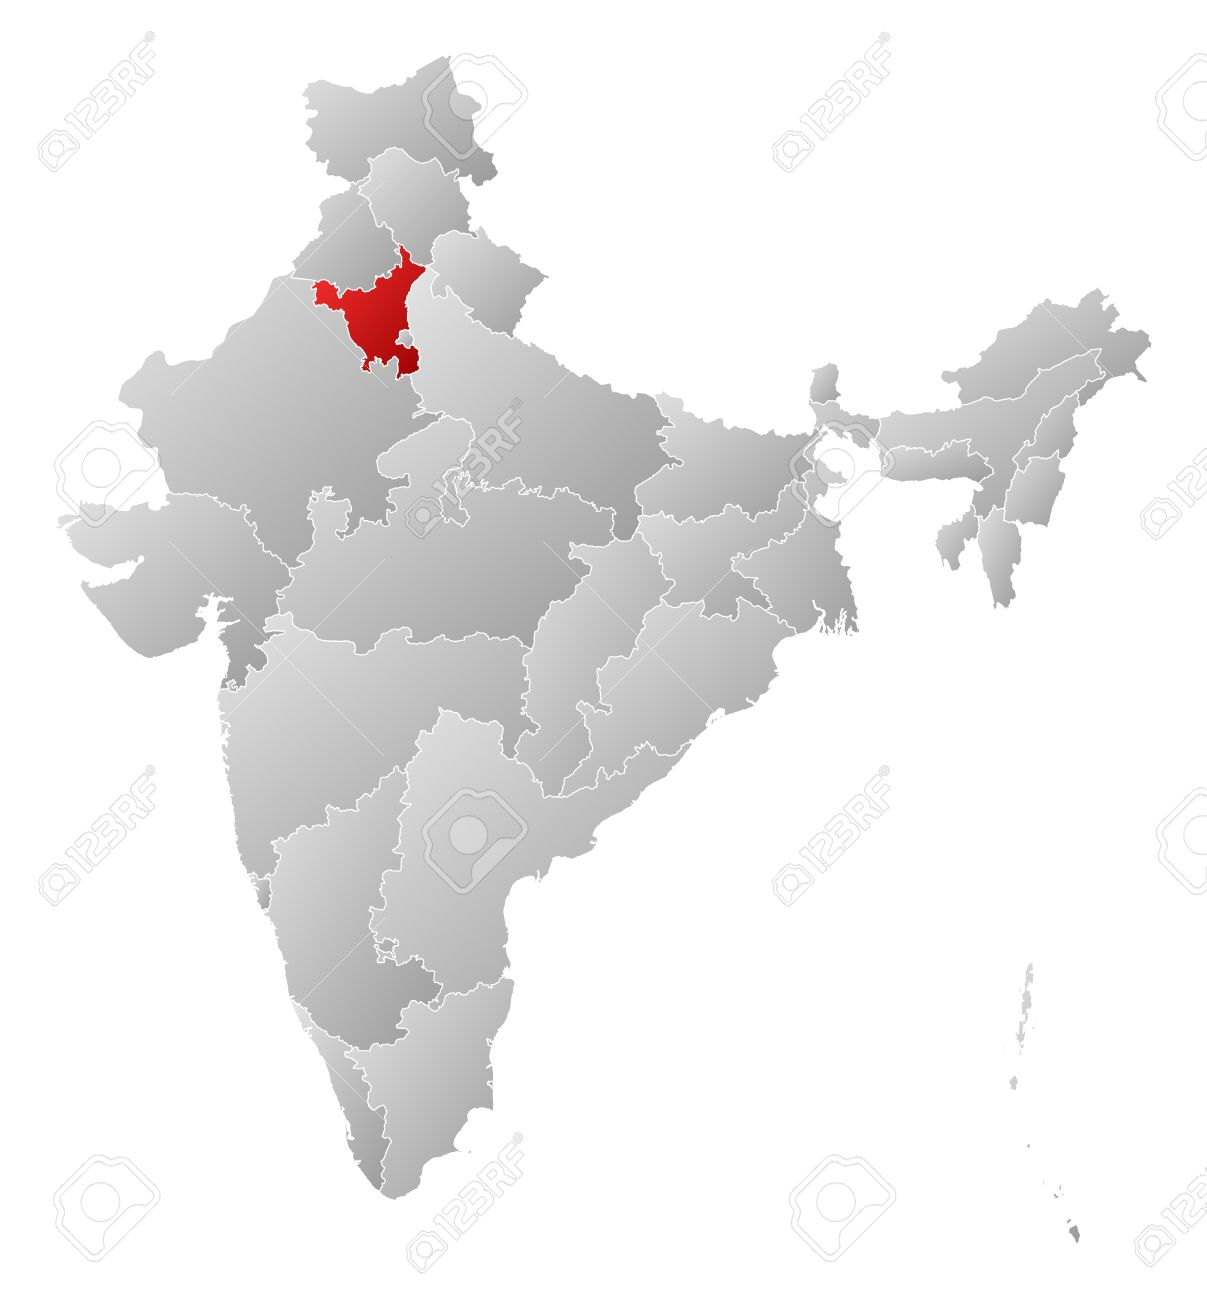 Haryana India Map.Political Map Of India With The Several States Where Haryana